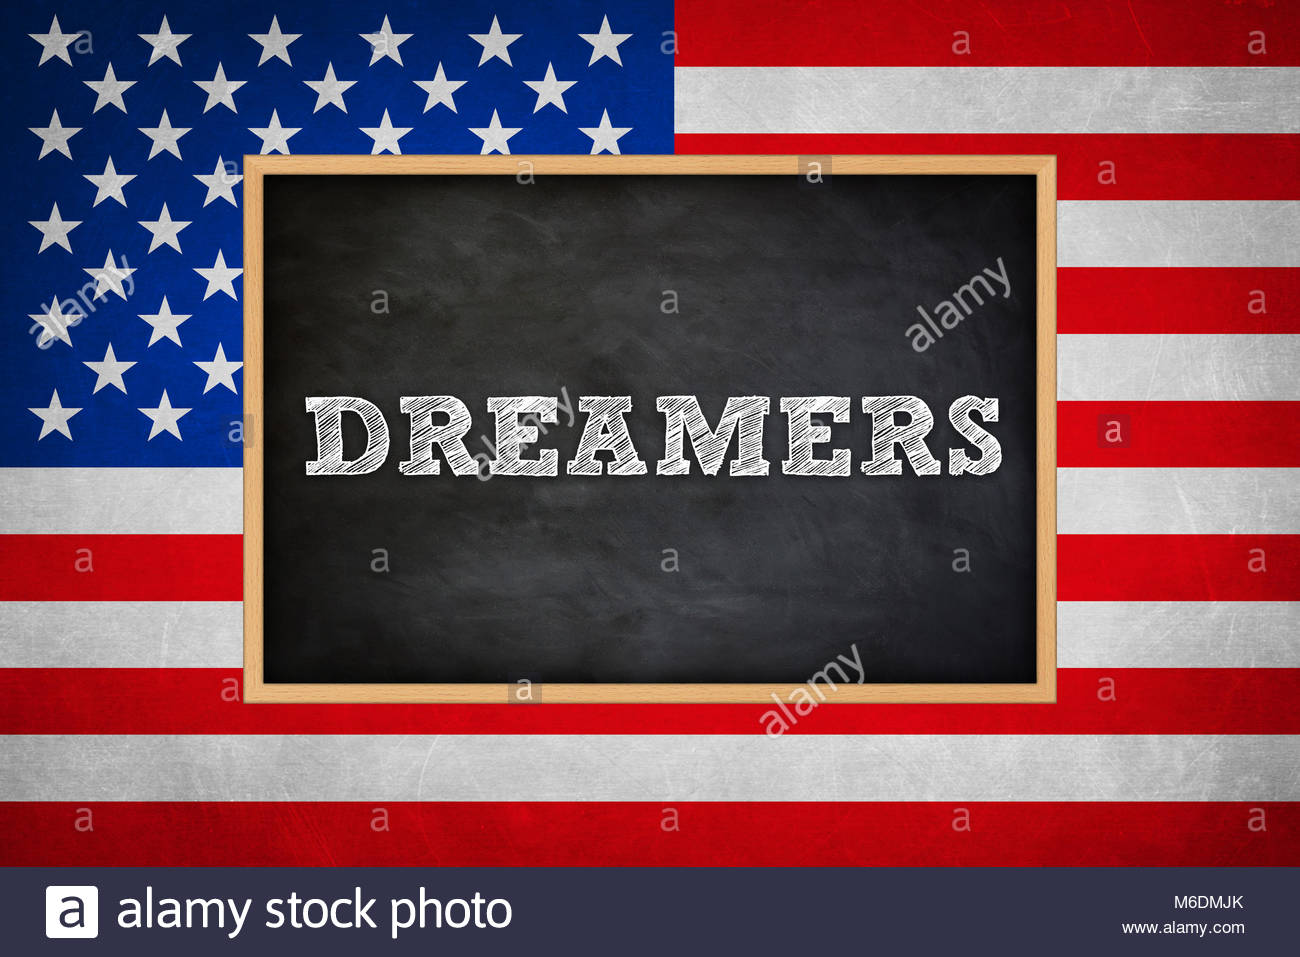 Dreamers Children in America - Stock Image